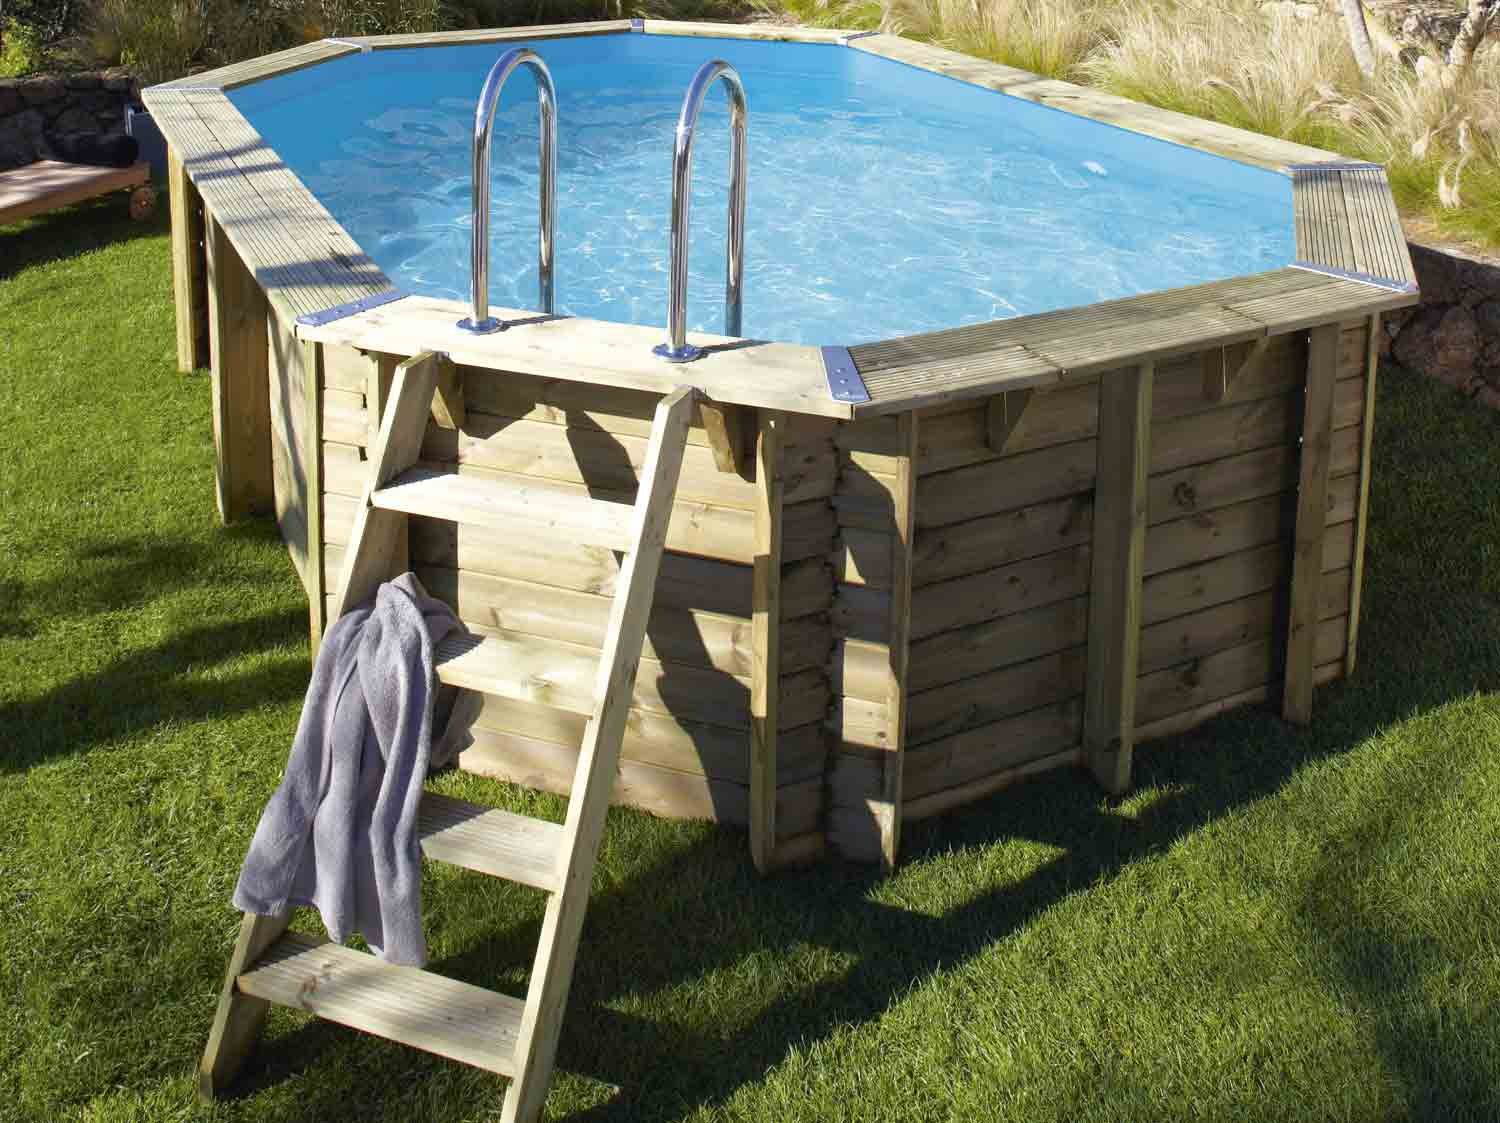 Tente de jardin leroy merlin maison design for Piscine hors sol decathlon